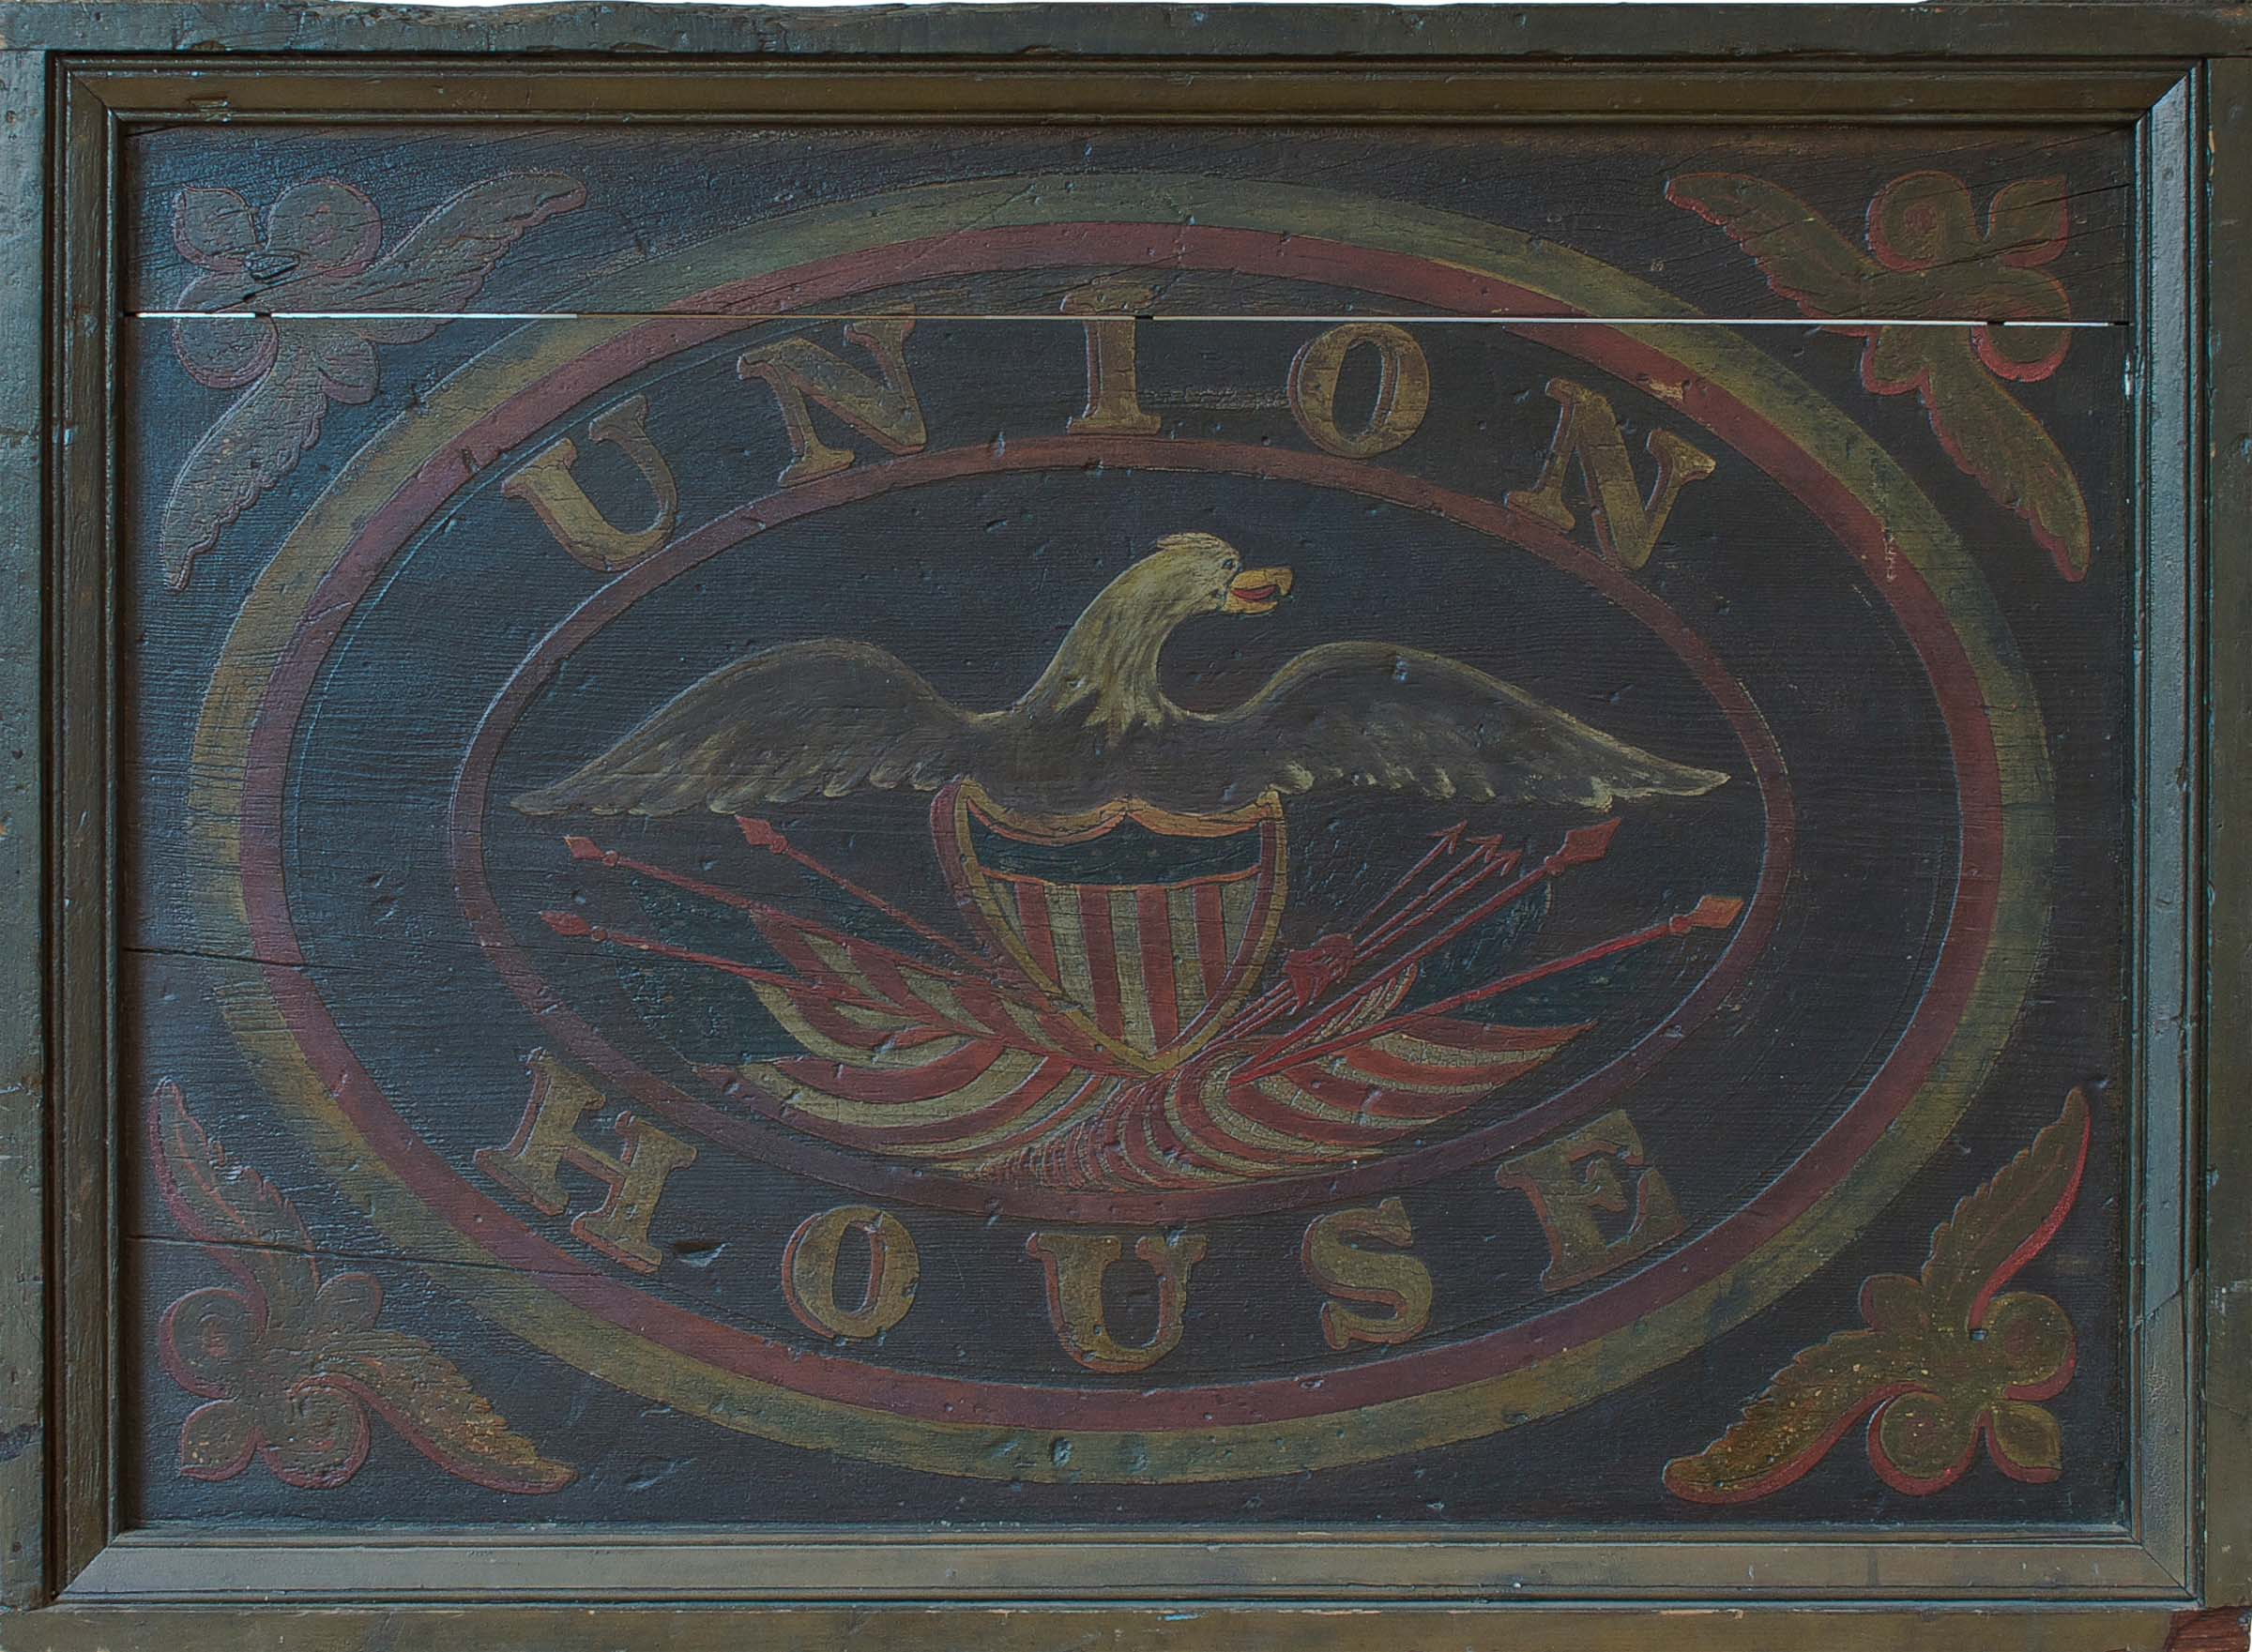 Anonymous, New York State, Union House Tavern Sign, c. 1860, painted wood and iron, 52.5h x 47w x 10d in.